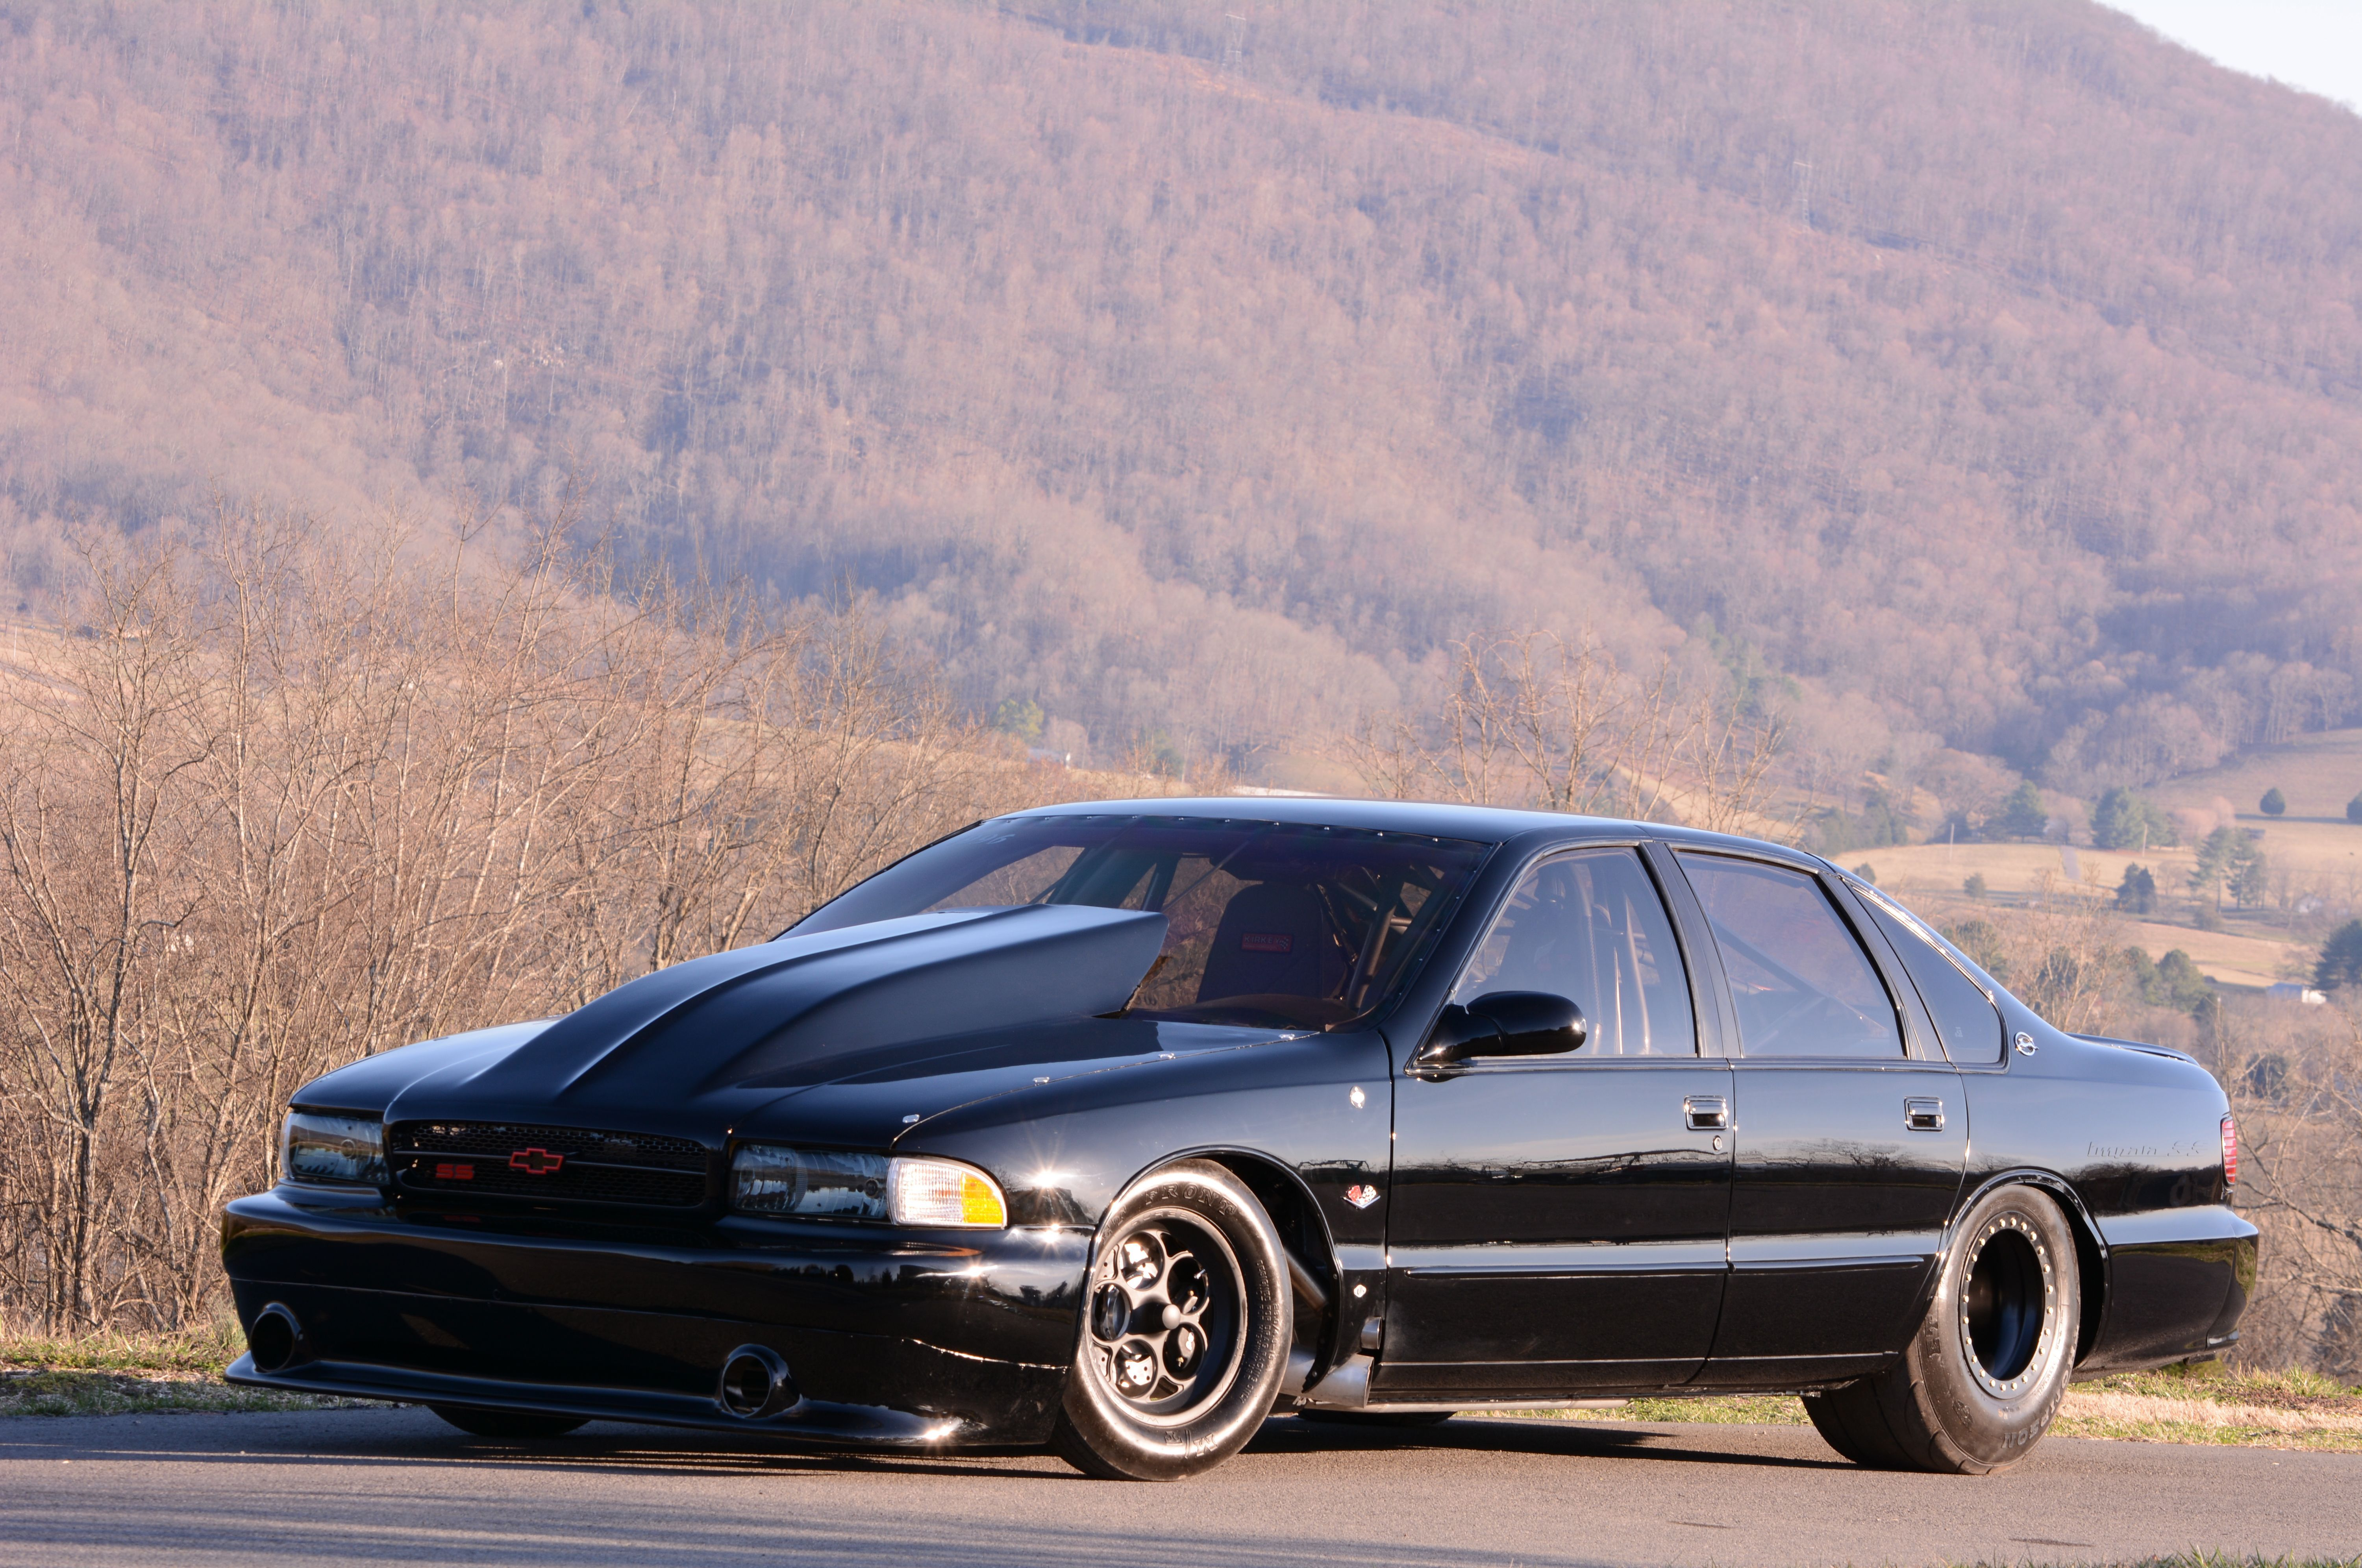 Rick Wetherbee s bad in black 1996 Chevrolet Impala SS is an Outlaw